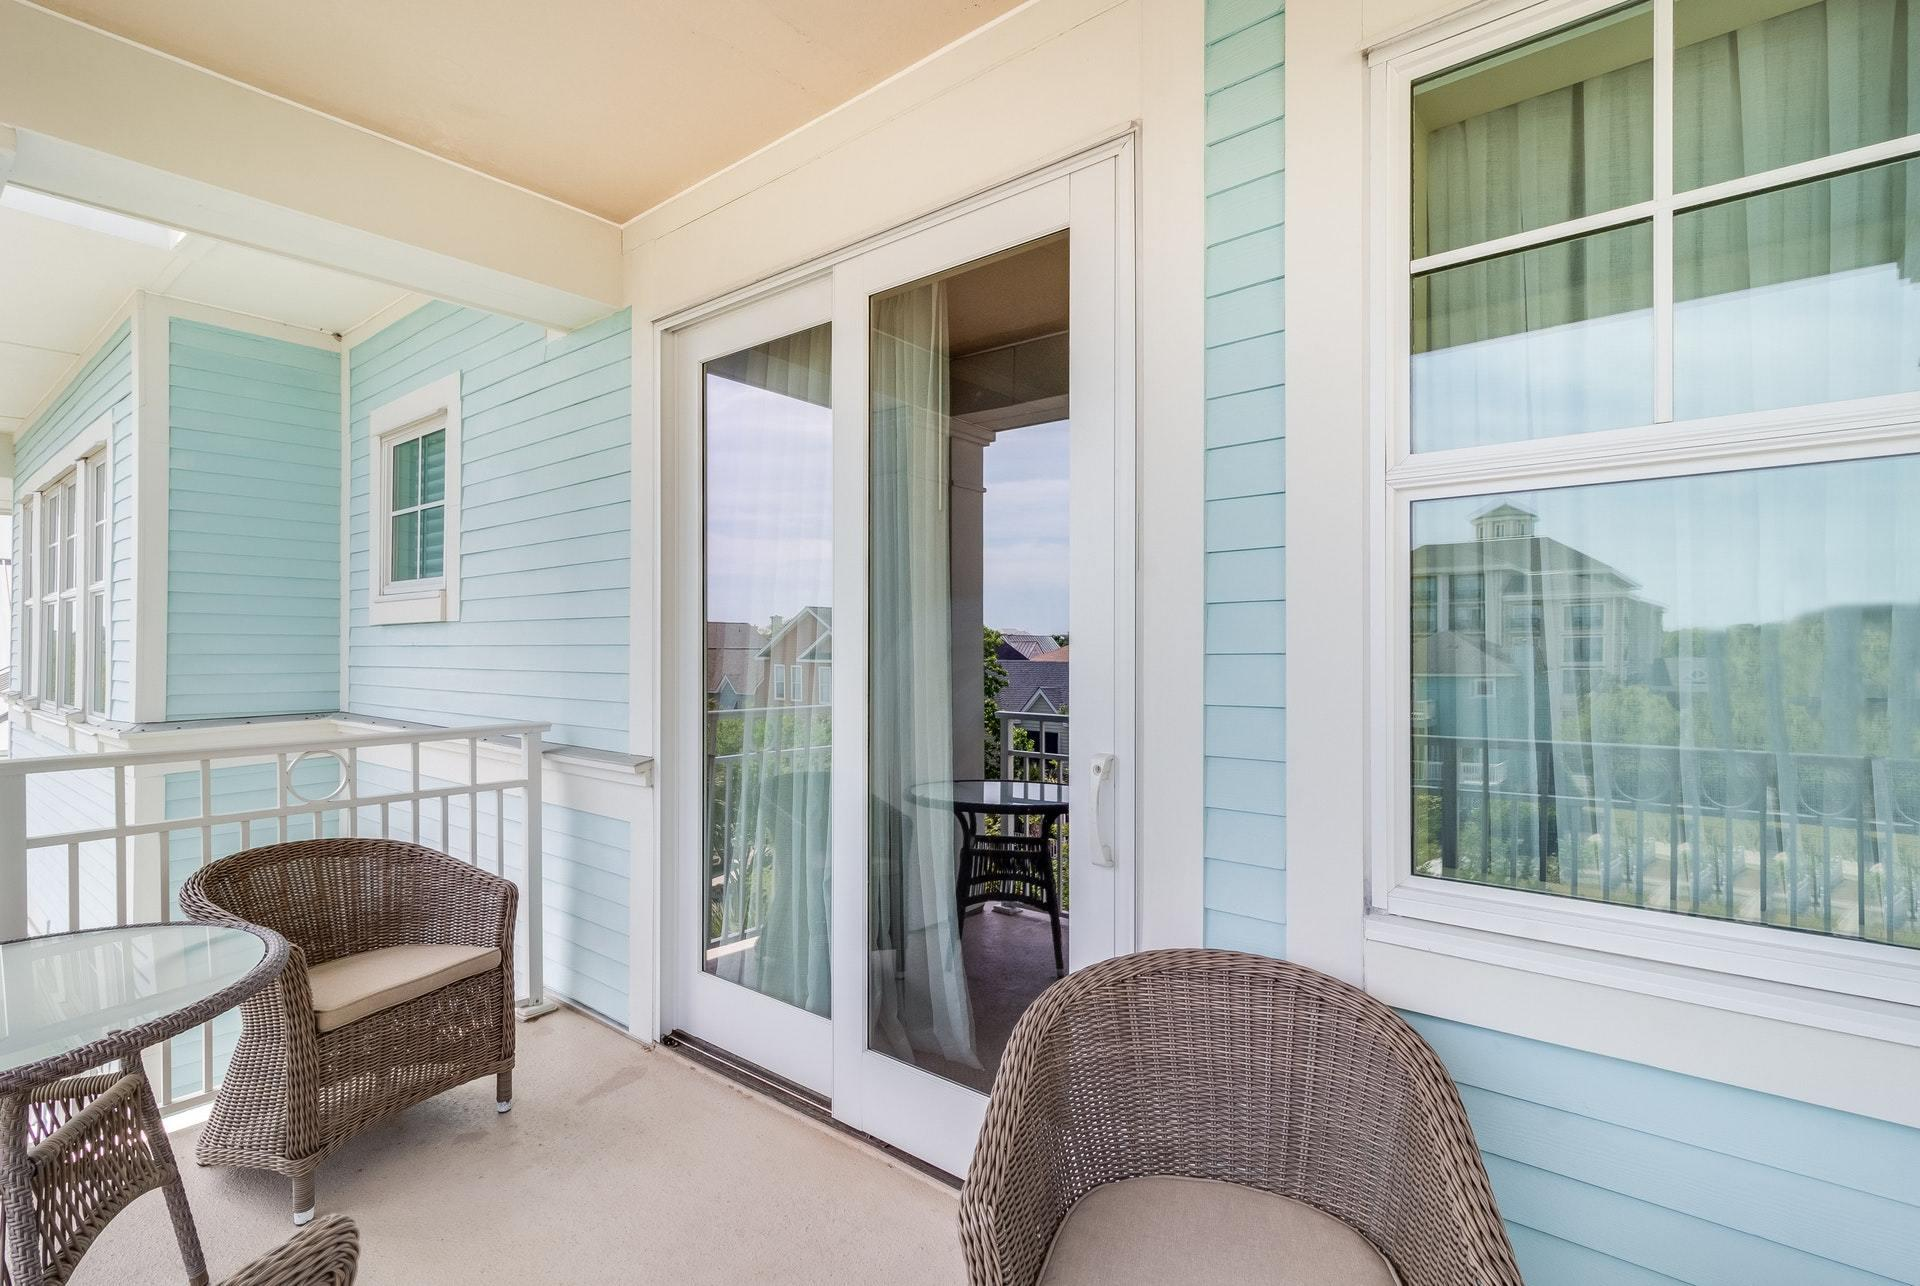 Wild Dunes Homes For Sale - 5800 Palmetto Drive, Isle of Palms, SC - 22